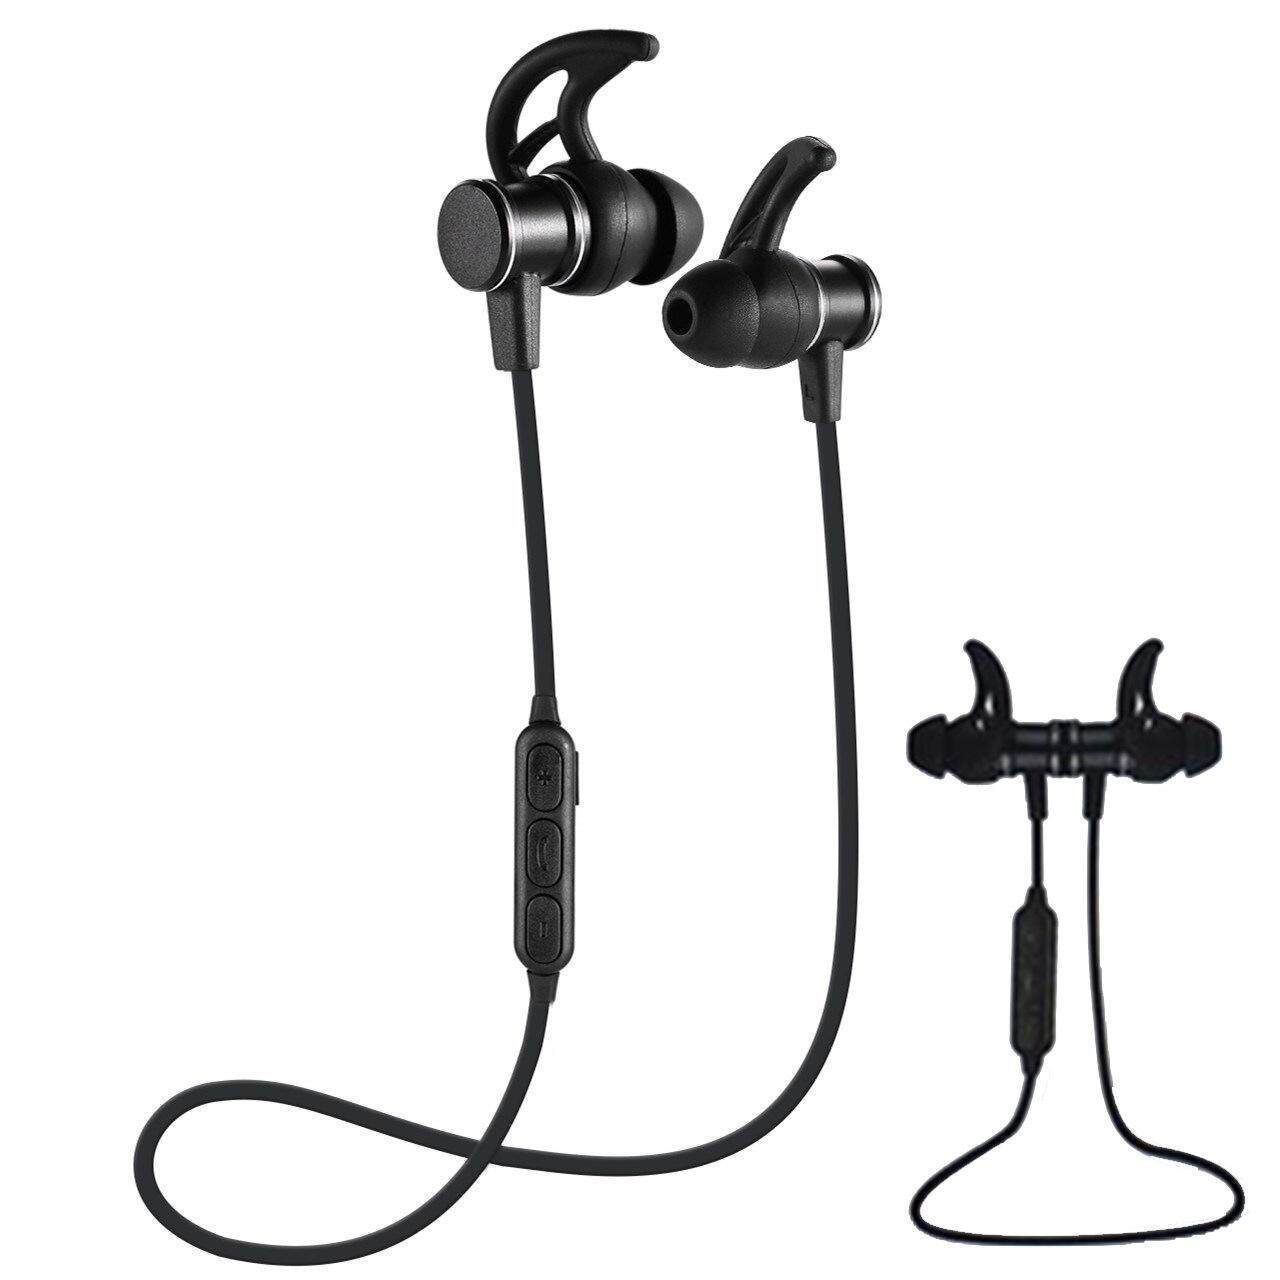 In Ear Headphone For Sale Headphones Prices Brands Specs Original Dacom Armor G06 Sport Ipx5 Waterproof Music Wireless Bluetooth Headset Motion Heavy Bass Android Mobile Phone Universal Magnetic Gift